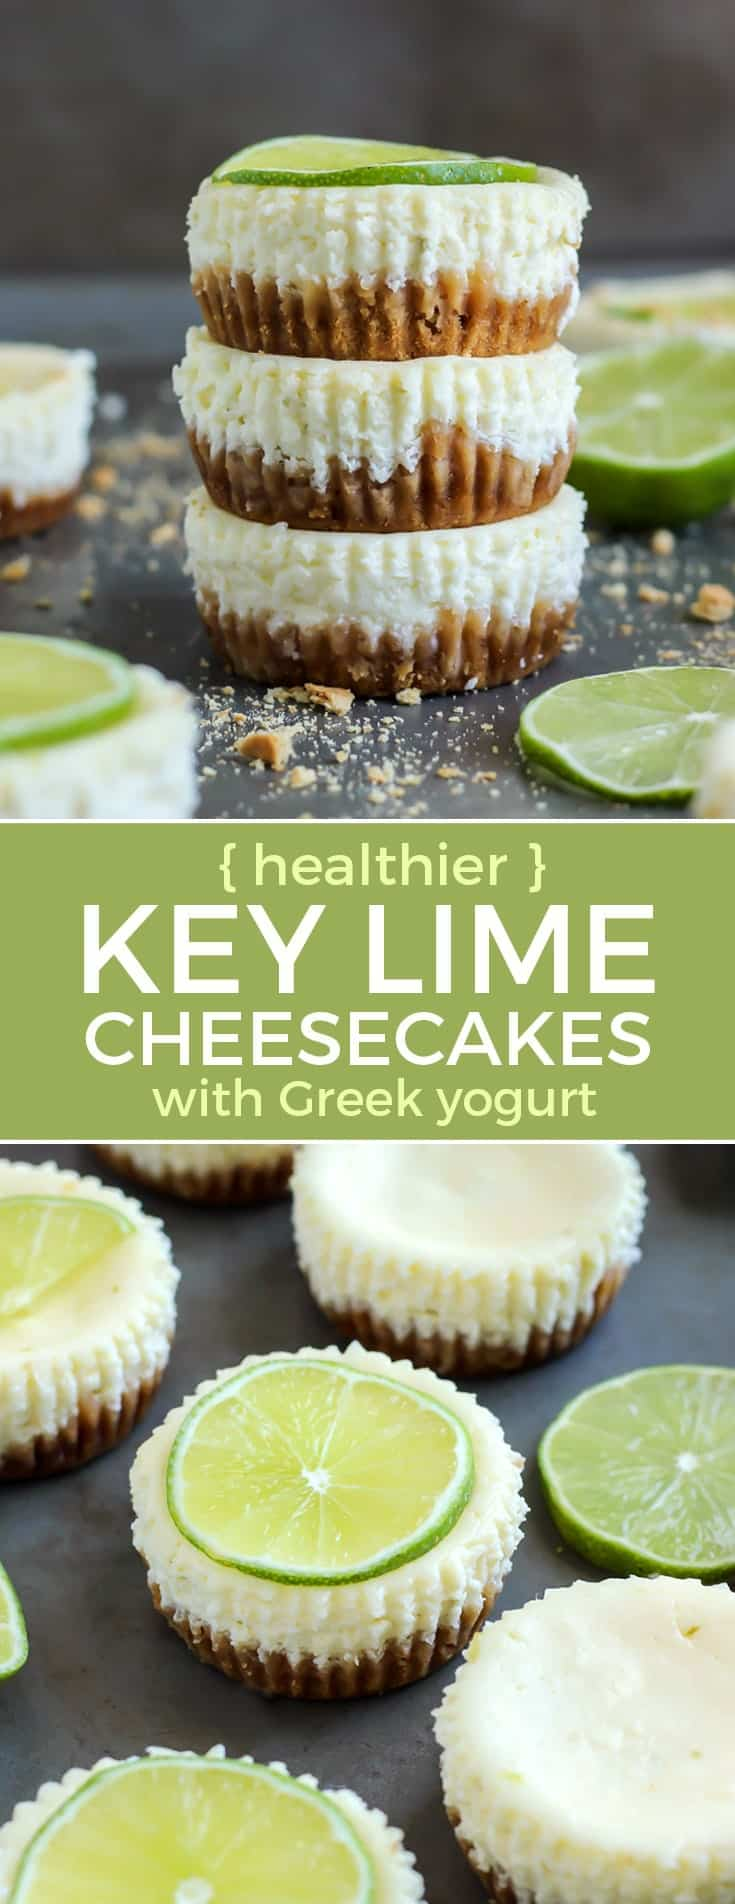 healthier key lime cheesecakes with greek yogurt with lime slices pinterest image